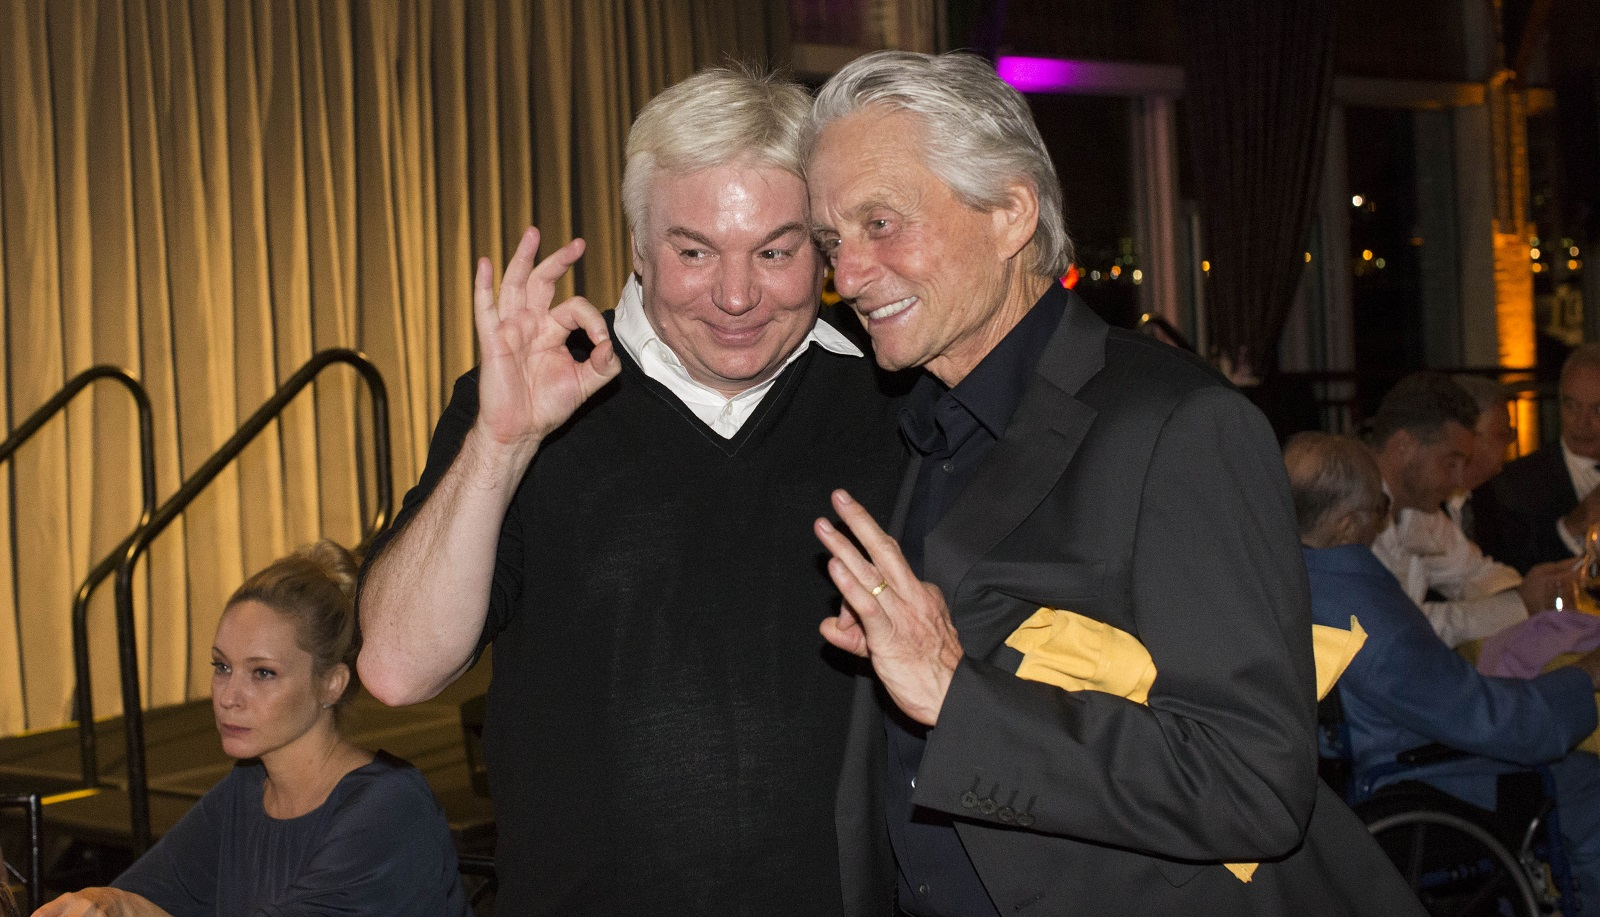 """Actor Mike Myers, left, produced a documentary about Gordon titled """"Supermensch."""" Here, Myers stands with fellow actor Michael Douglas, right, a friend of Gordon's. (Derek Gee/Buffalo News)"""